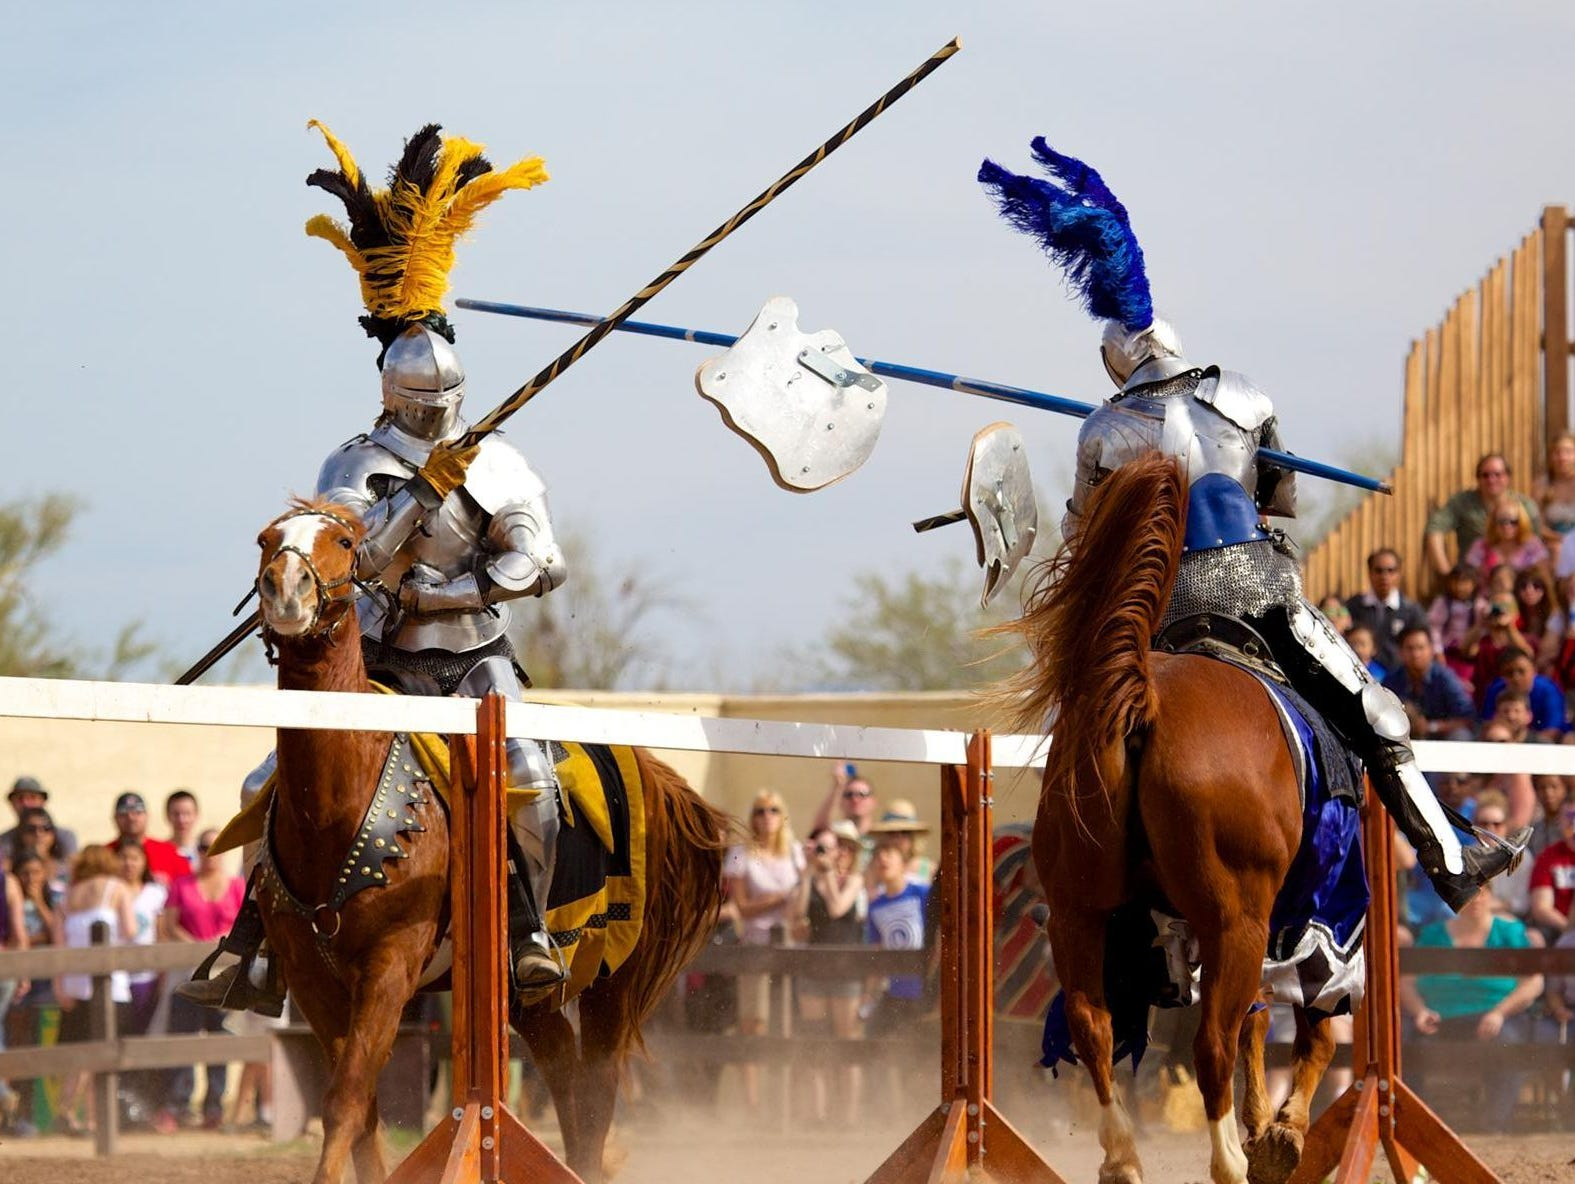 Enter to win 4 tickets, costuming & 2 hours with the royal court and the queen's joust at noon-HUZZAH! Enter 2/8 to 3/20